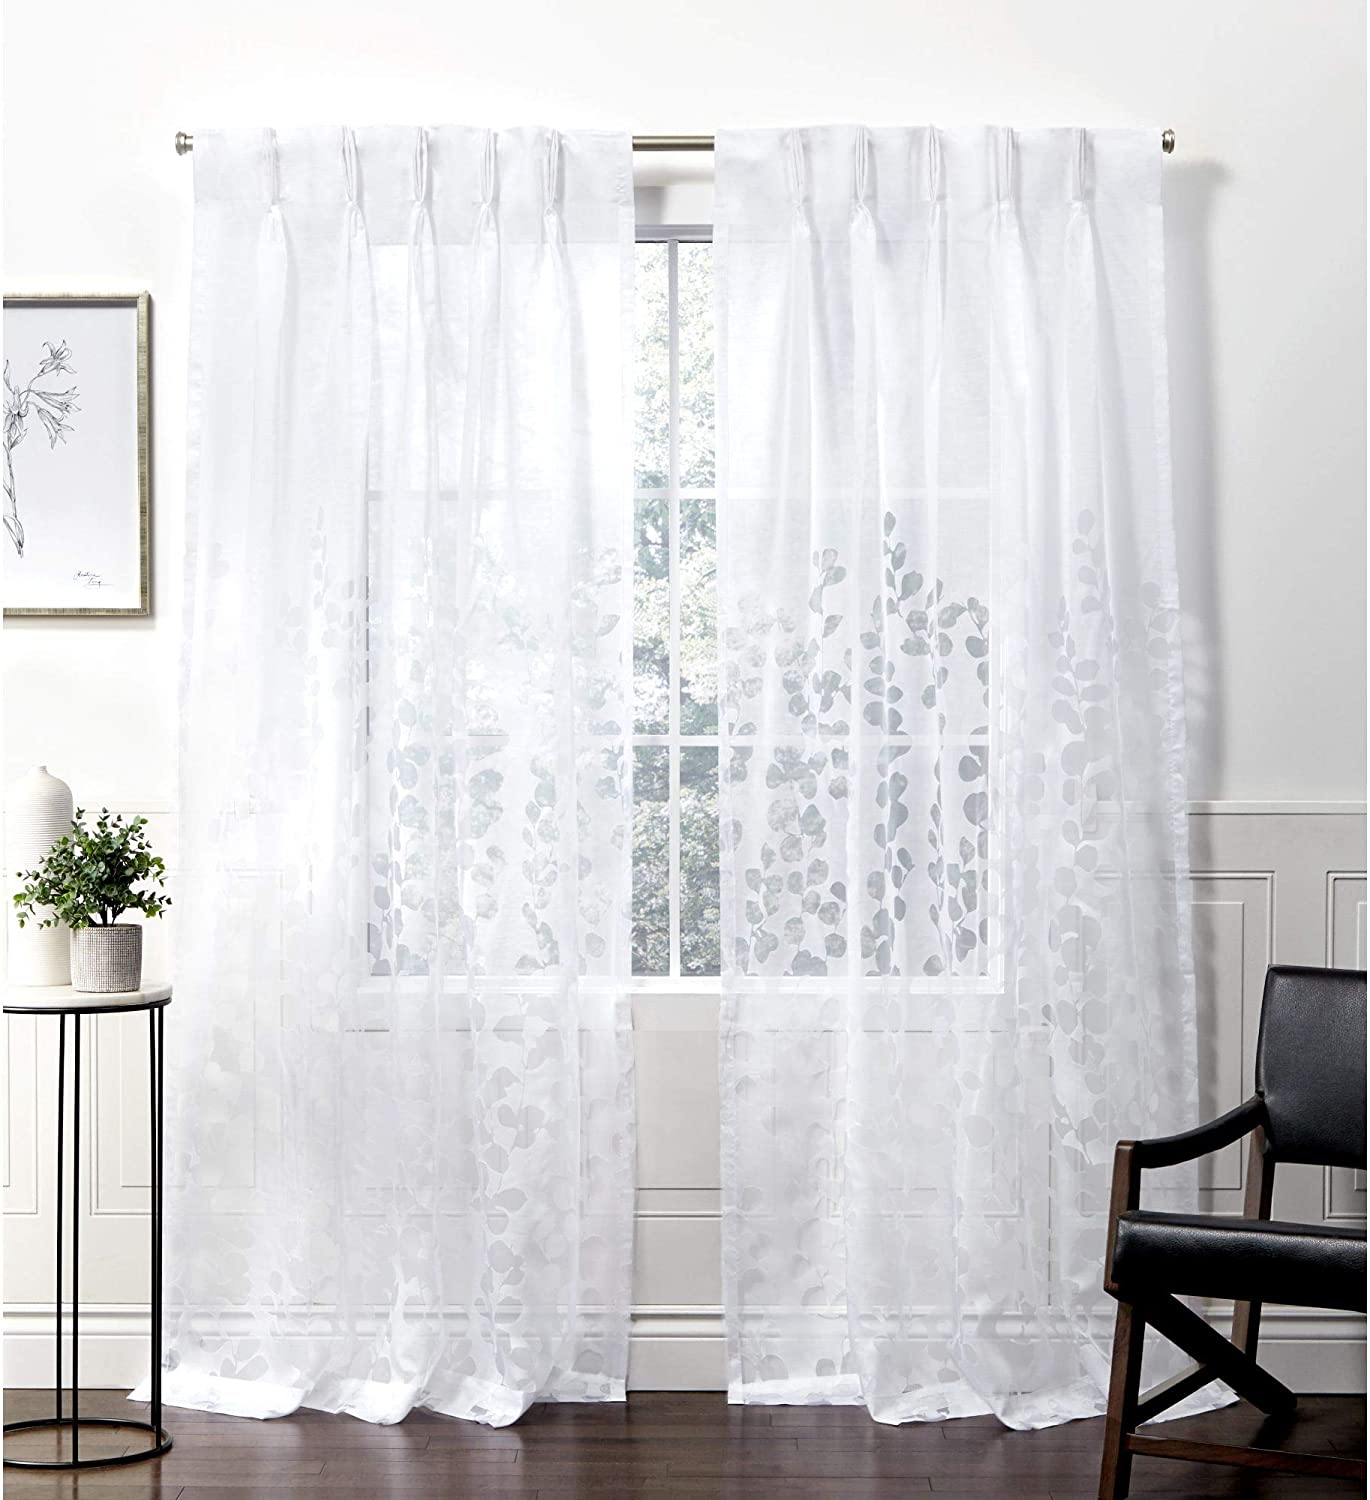 Exclusive Home Curtains Wilshire Pinch Pleat Curtain Panel, 54x108, Winter White, 2 Panels